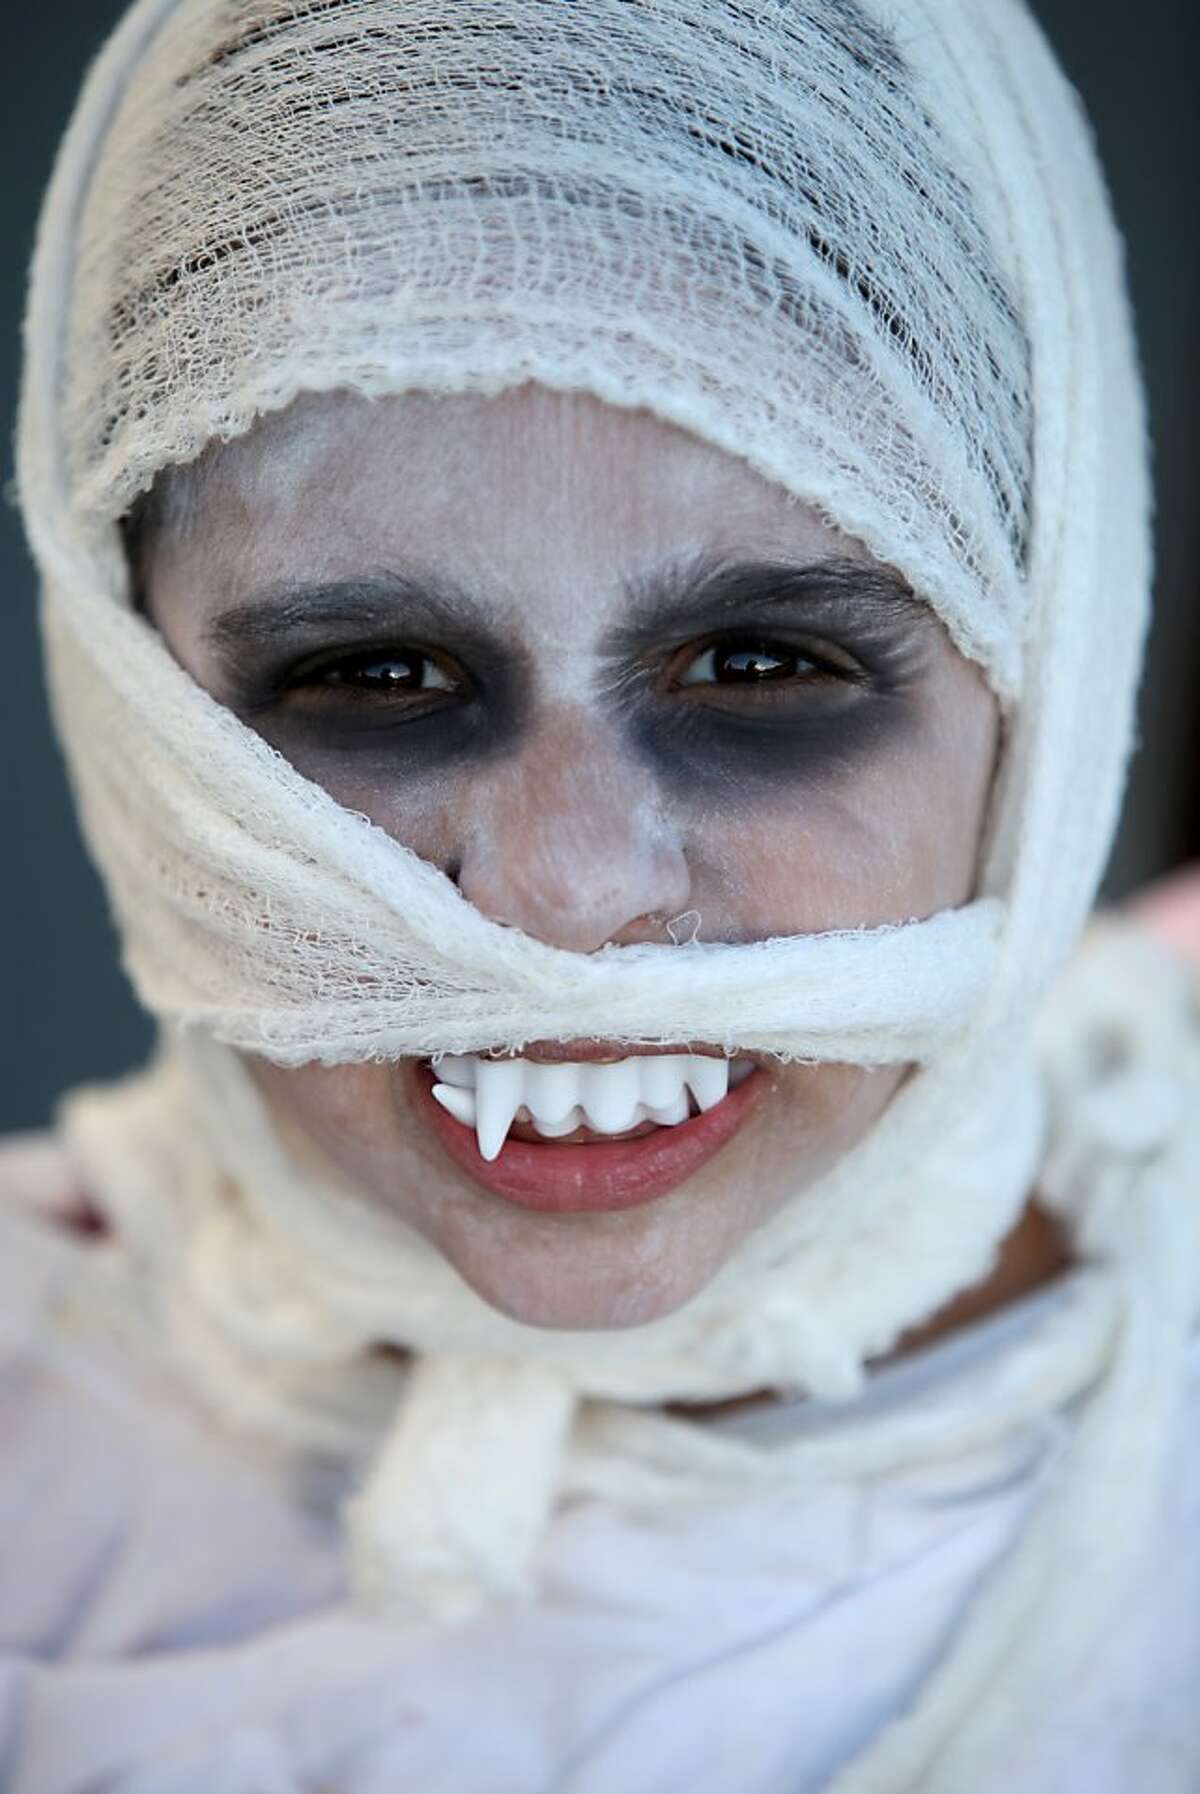 Qais Dudum, 6, a first grader, dressed up as a mummy for the annual halloween parade at Francis Scott Key Elementary School in San Francisco, Calif., Thursday, October 31, 2013.